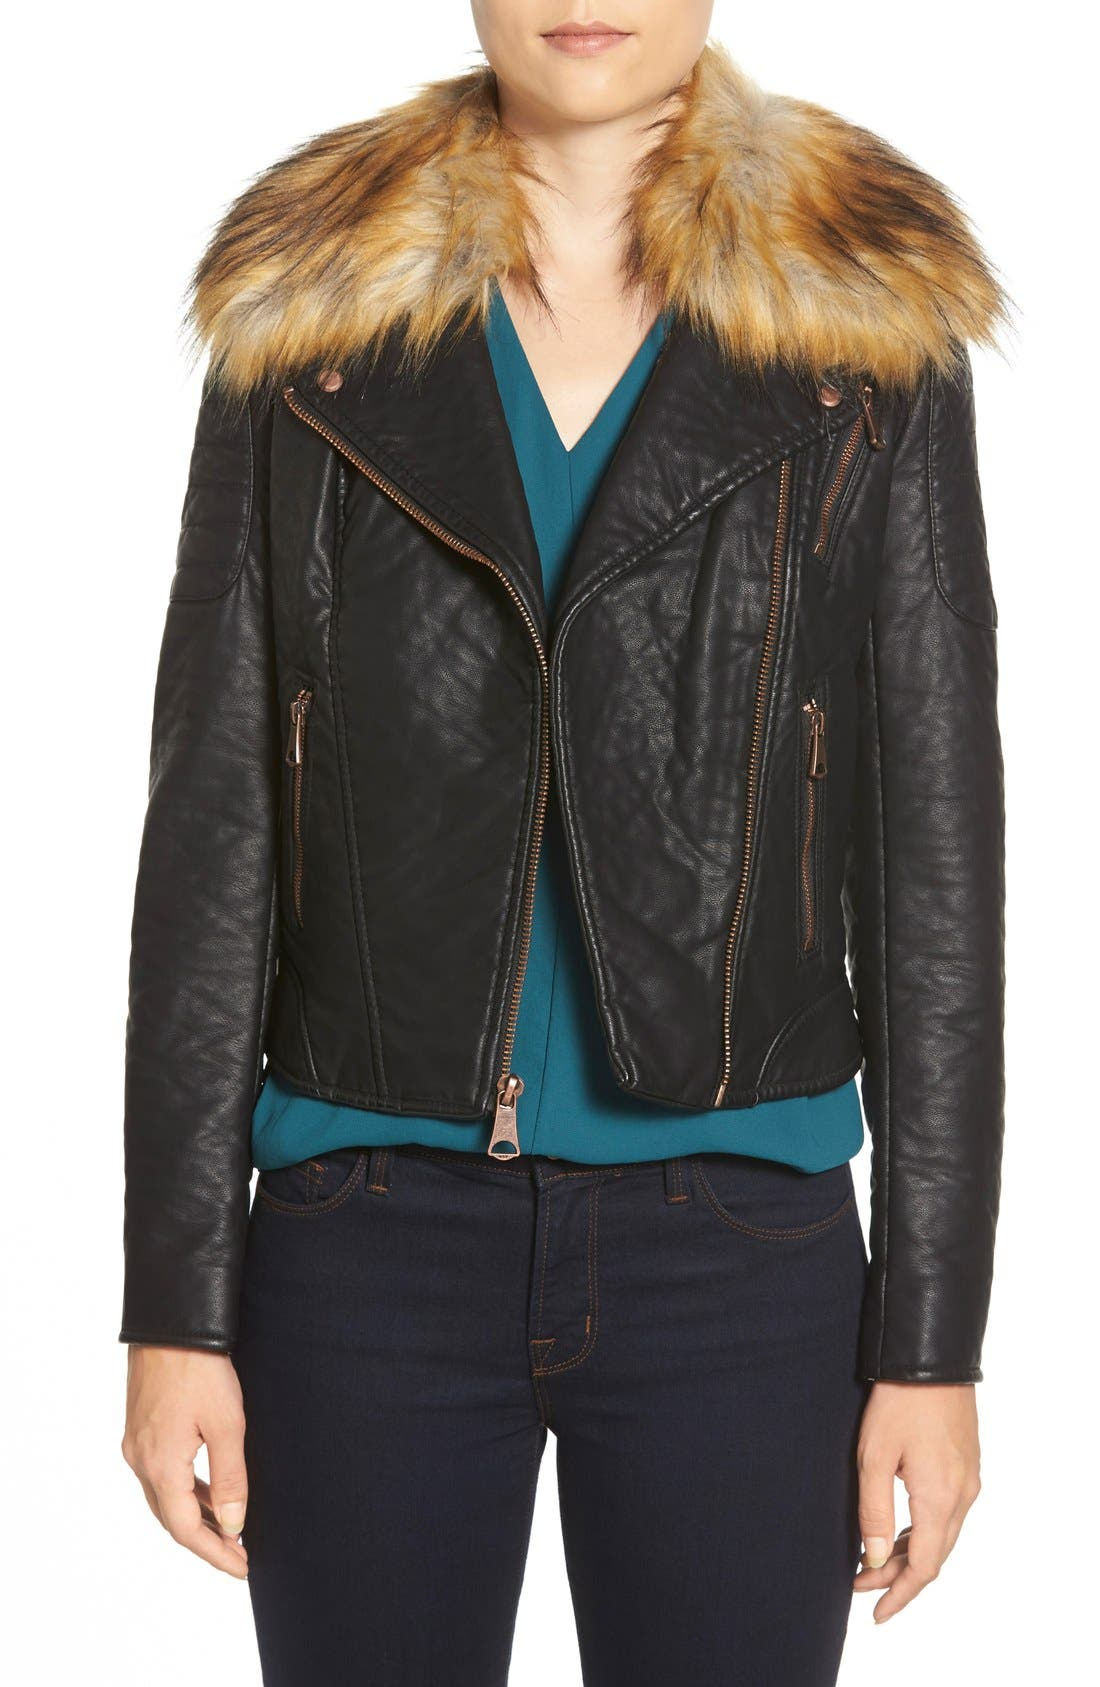 Alternate Image 1 Selected - Marc New York 'Genna' Faux Fur Collar Faux Leather Moto Jacket